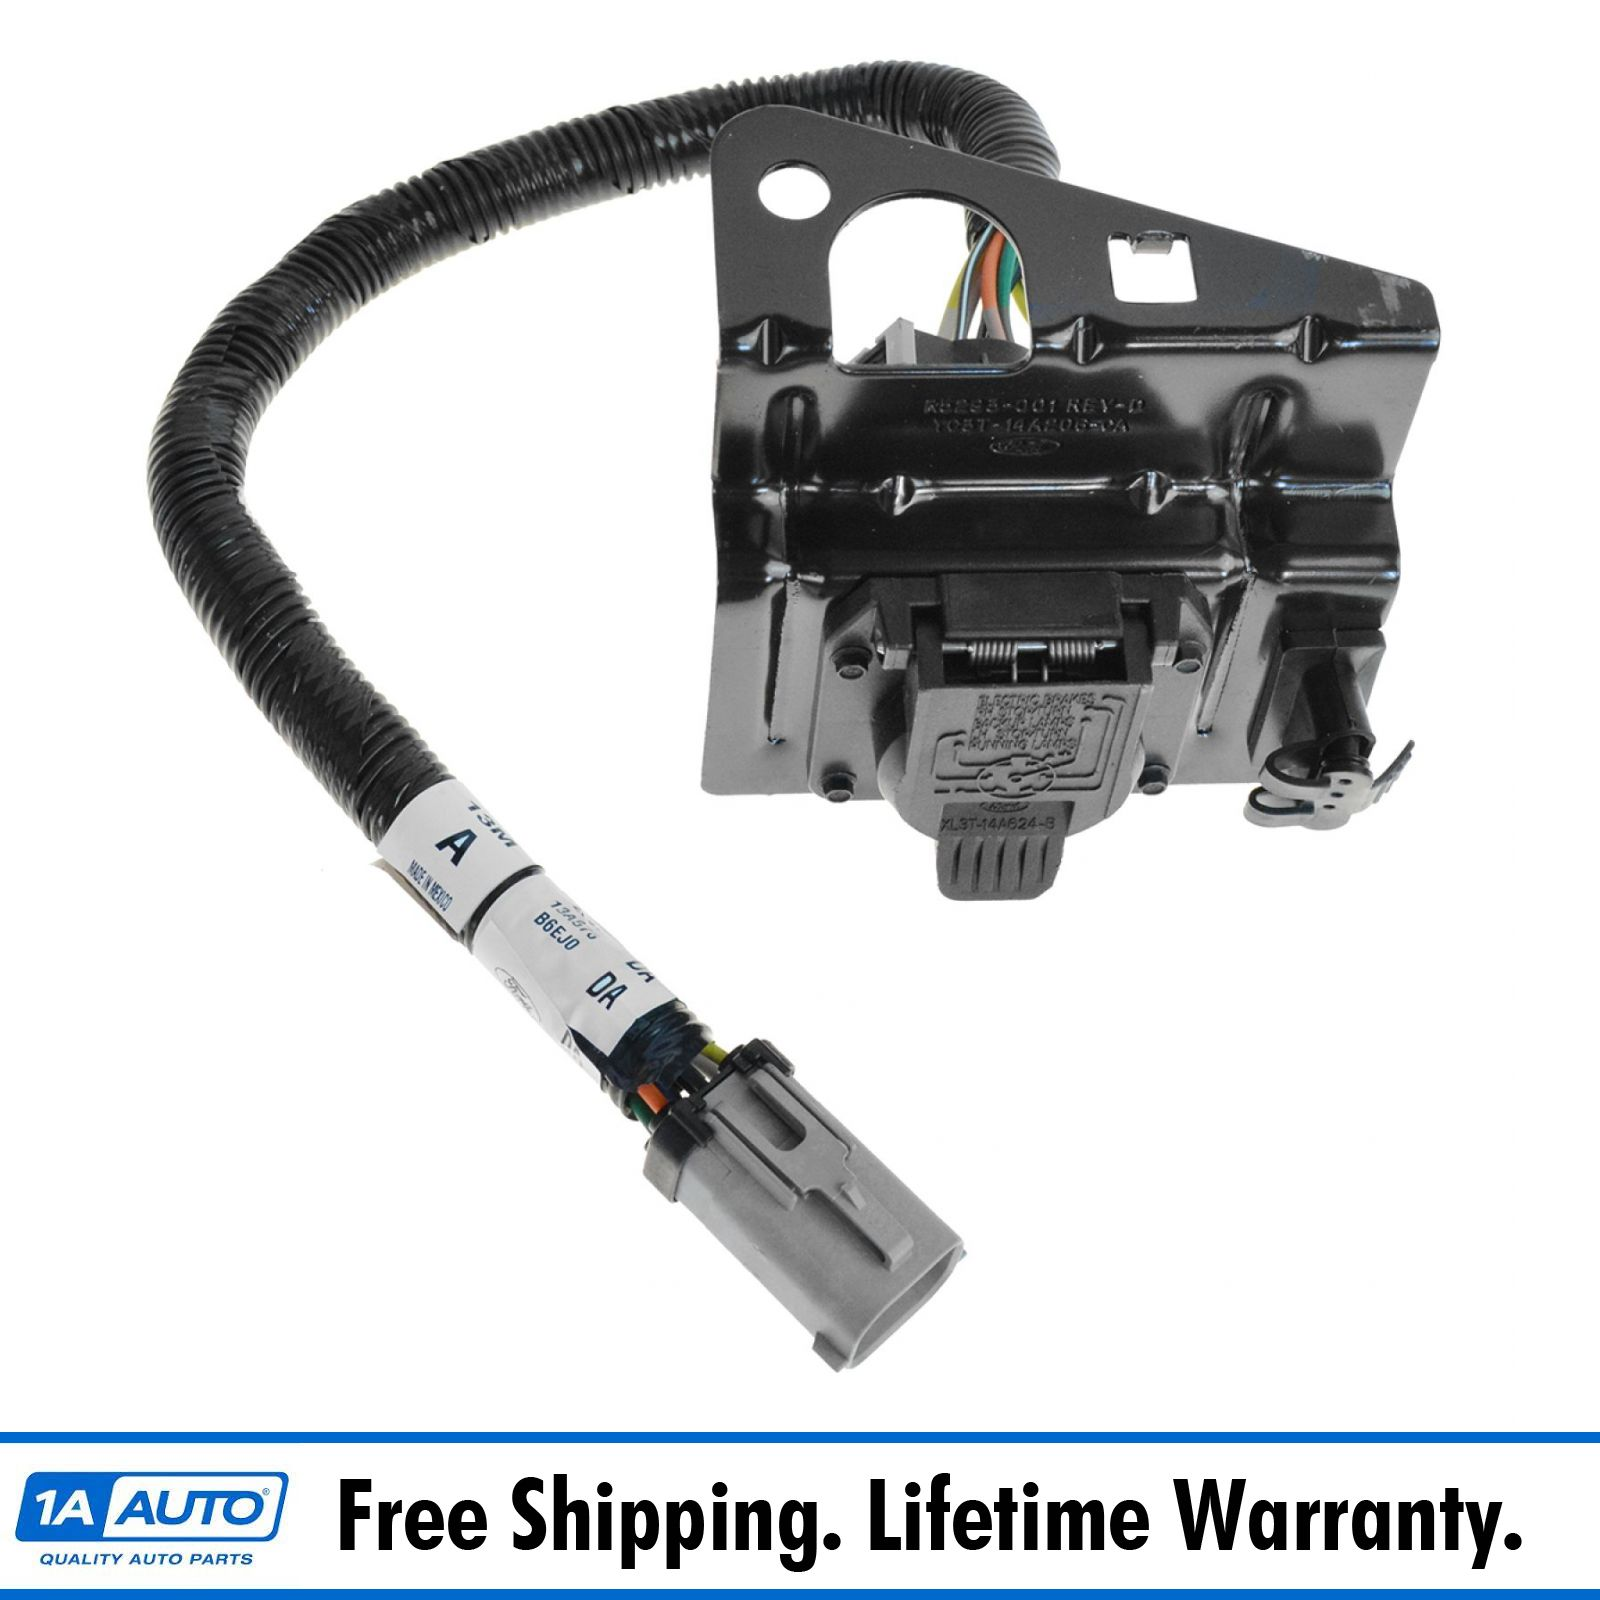 Ford Trailer Plug Harness - Wiring Diagram Dash on 7 prong trailer diagram, 7 prong rv plug, ford 7-way plug wiring, 2013 ram trailer wiring, 7 pin tow wiring, rv plug wiring, 7 prong plug wiring diagram, 6 pin trailer wiring,